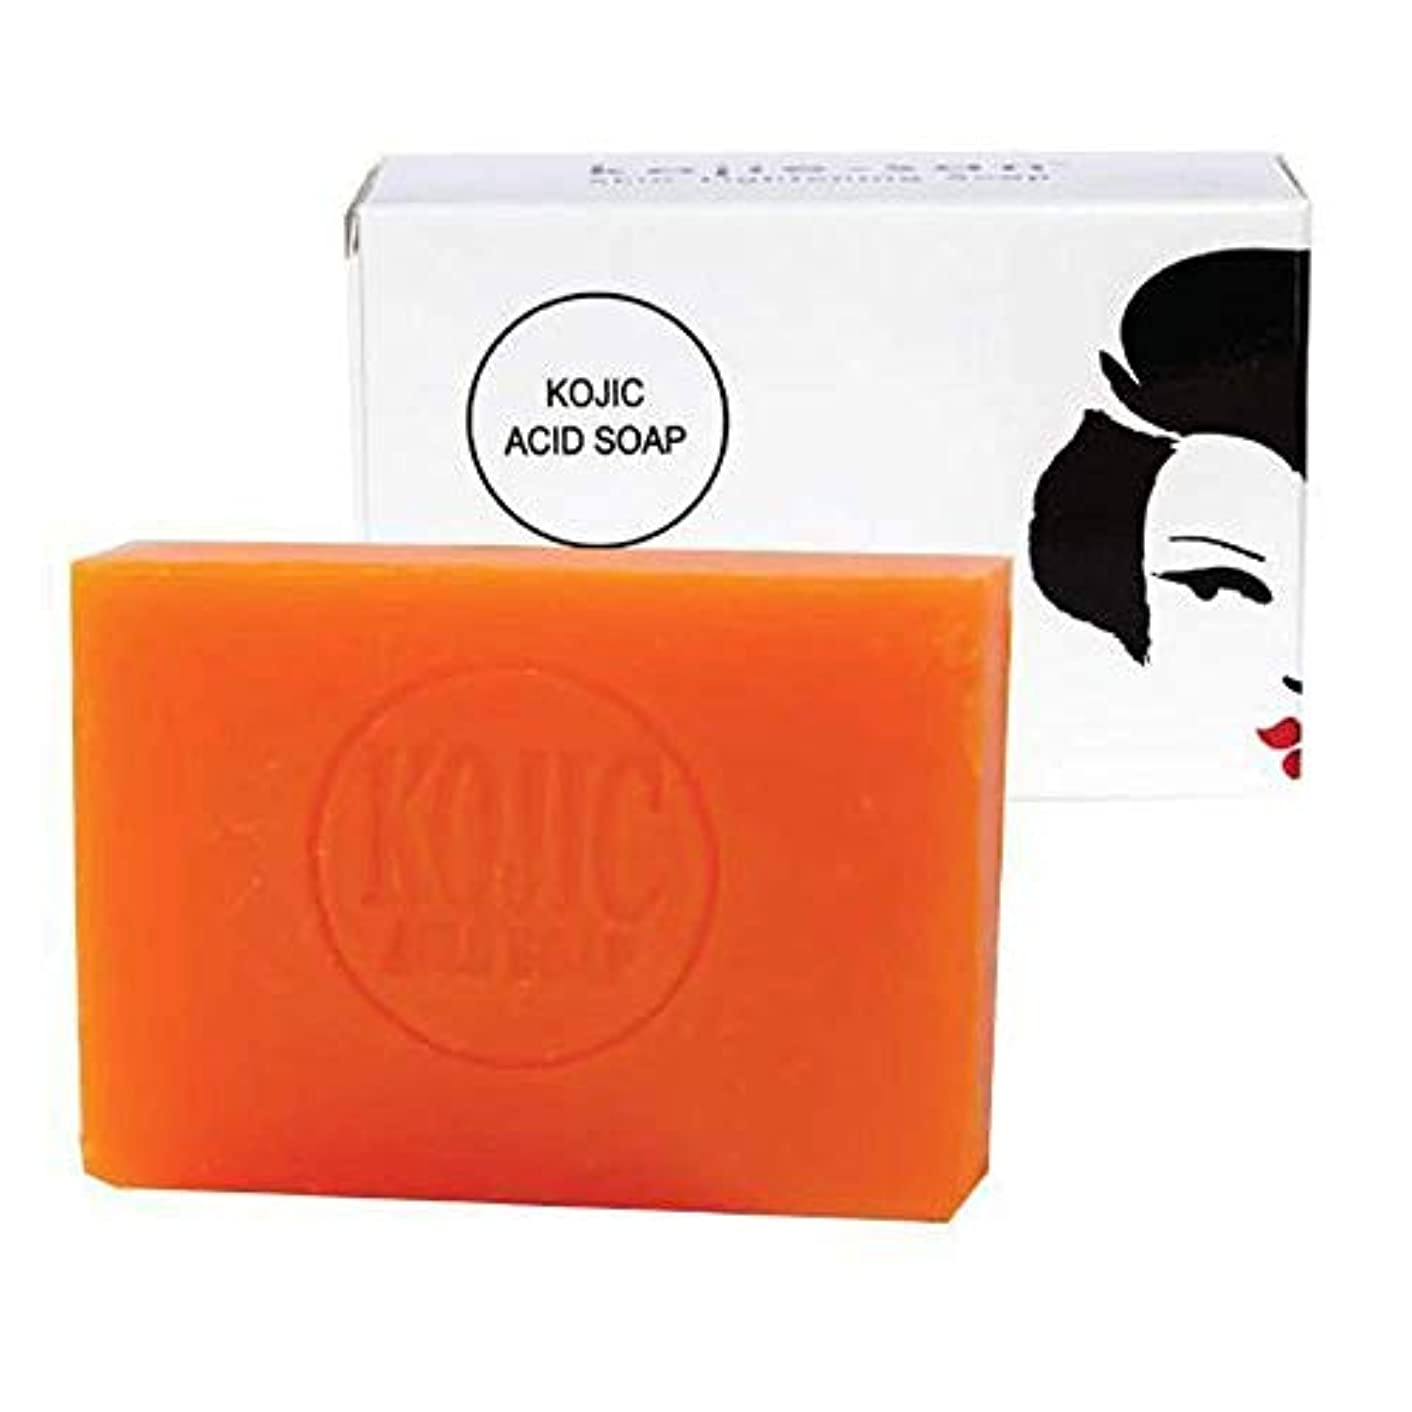 ガロンぺディカブ等しいKojie San Skin Lightening Kojic Acid Soap 2 Bars - 65G Fades Age Spots, Freckles, And Other Signs Of Sun Damage...